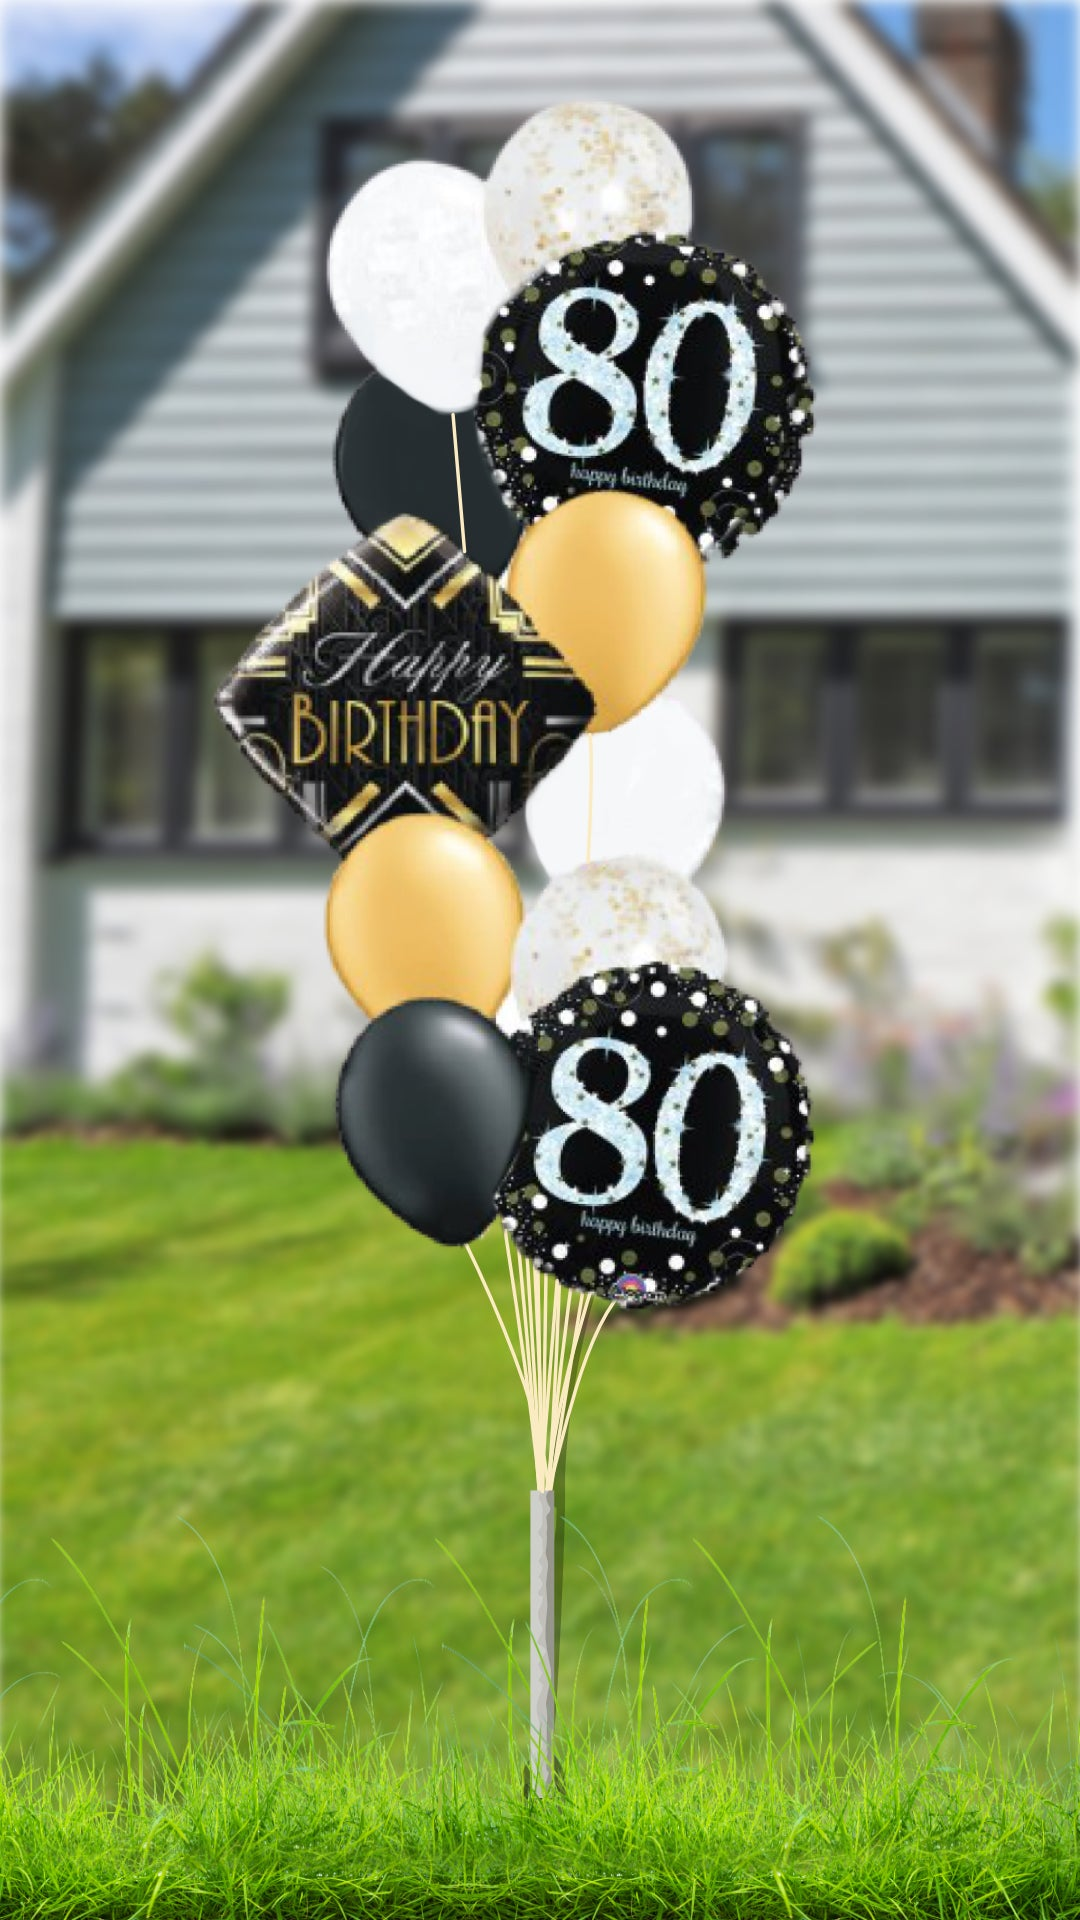 Cheers to 80 Years!